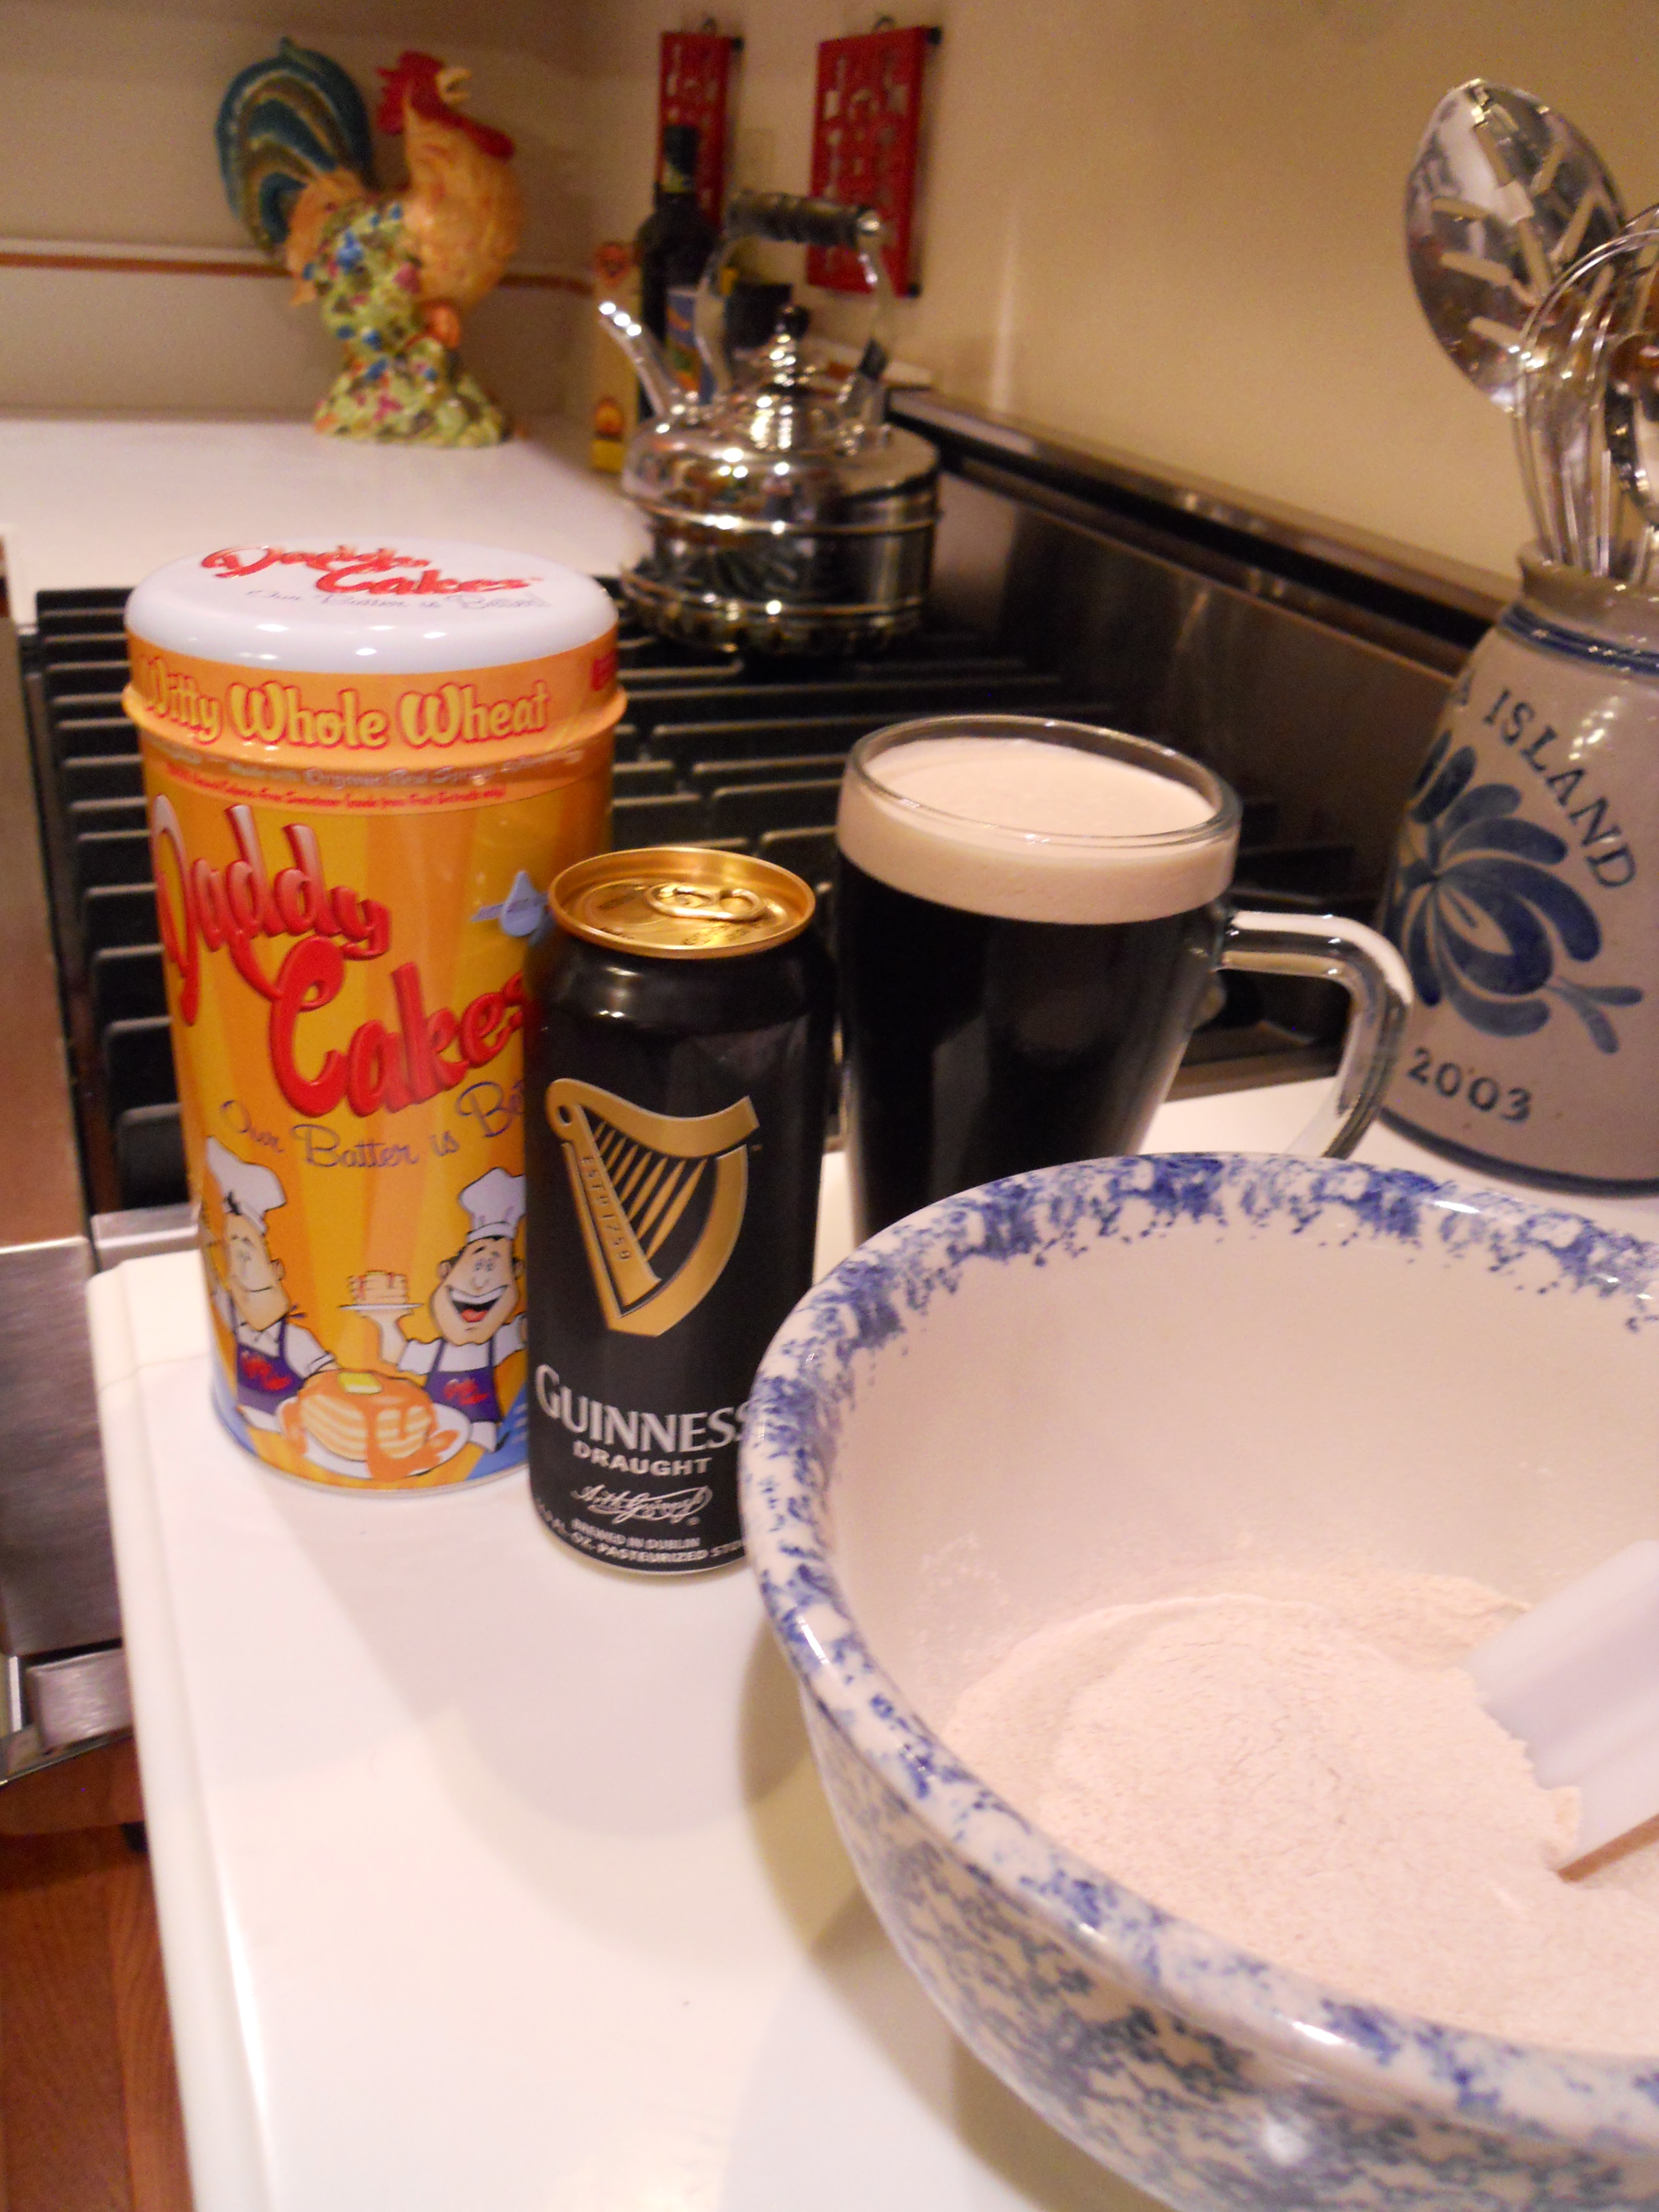 Daddy Cakes Guinness Beer Pancakes